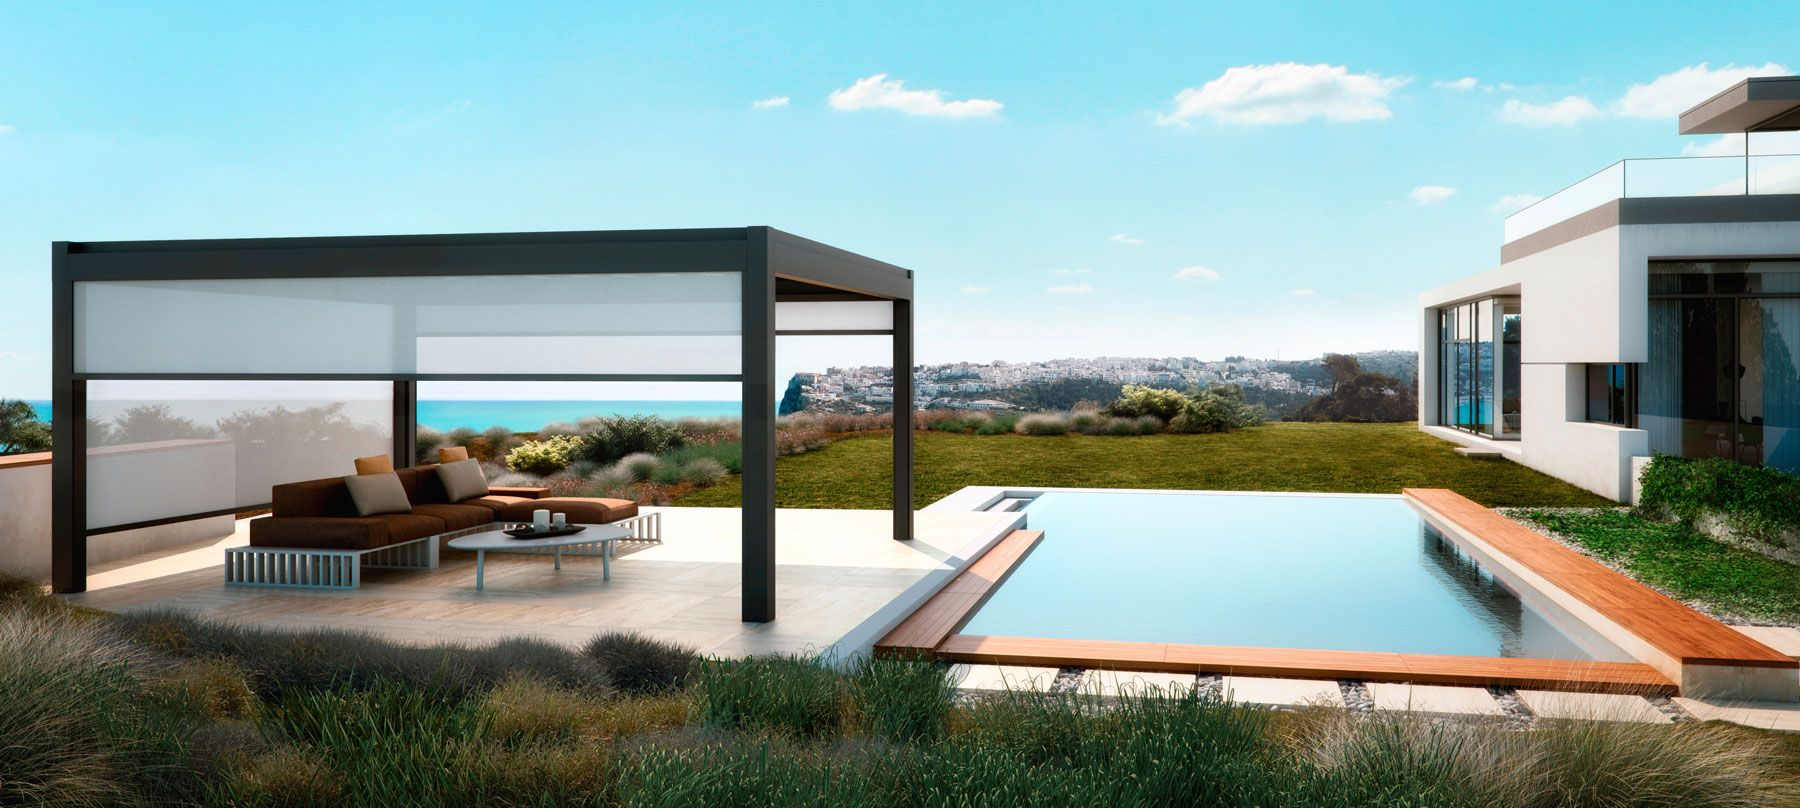 Maximise The Use Of Your Garden With An Automated Patio Roof Iq Outdoor Living Outdoor Pergola Aluminum Pergola Modern Pergola